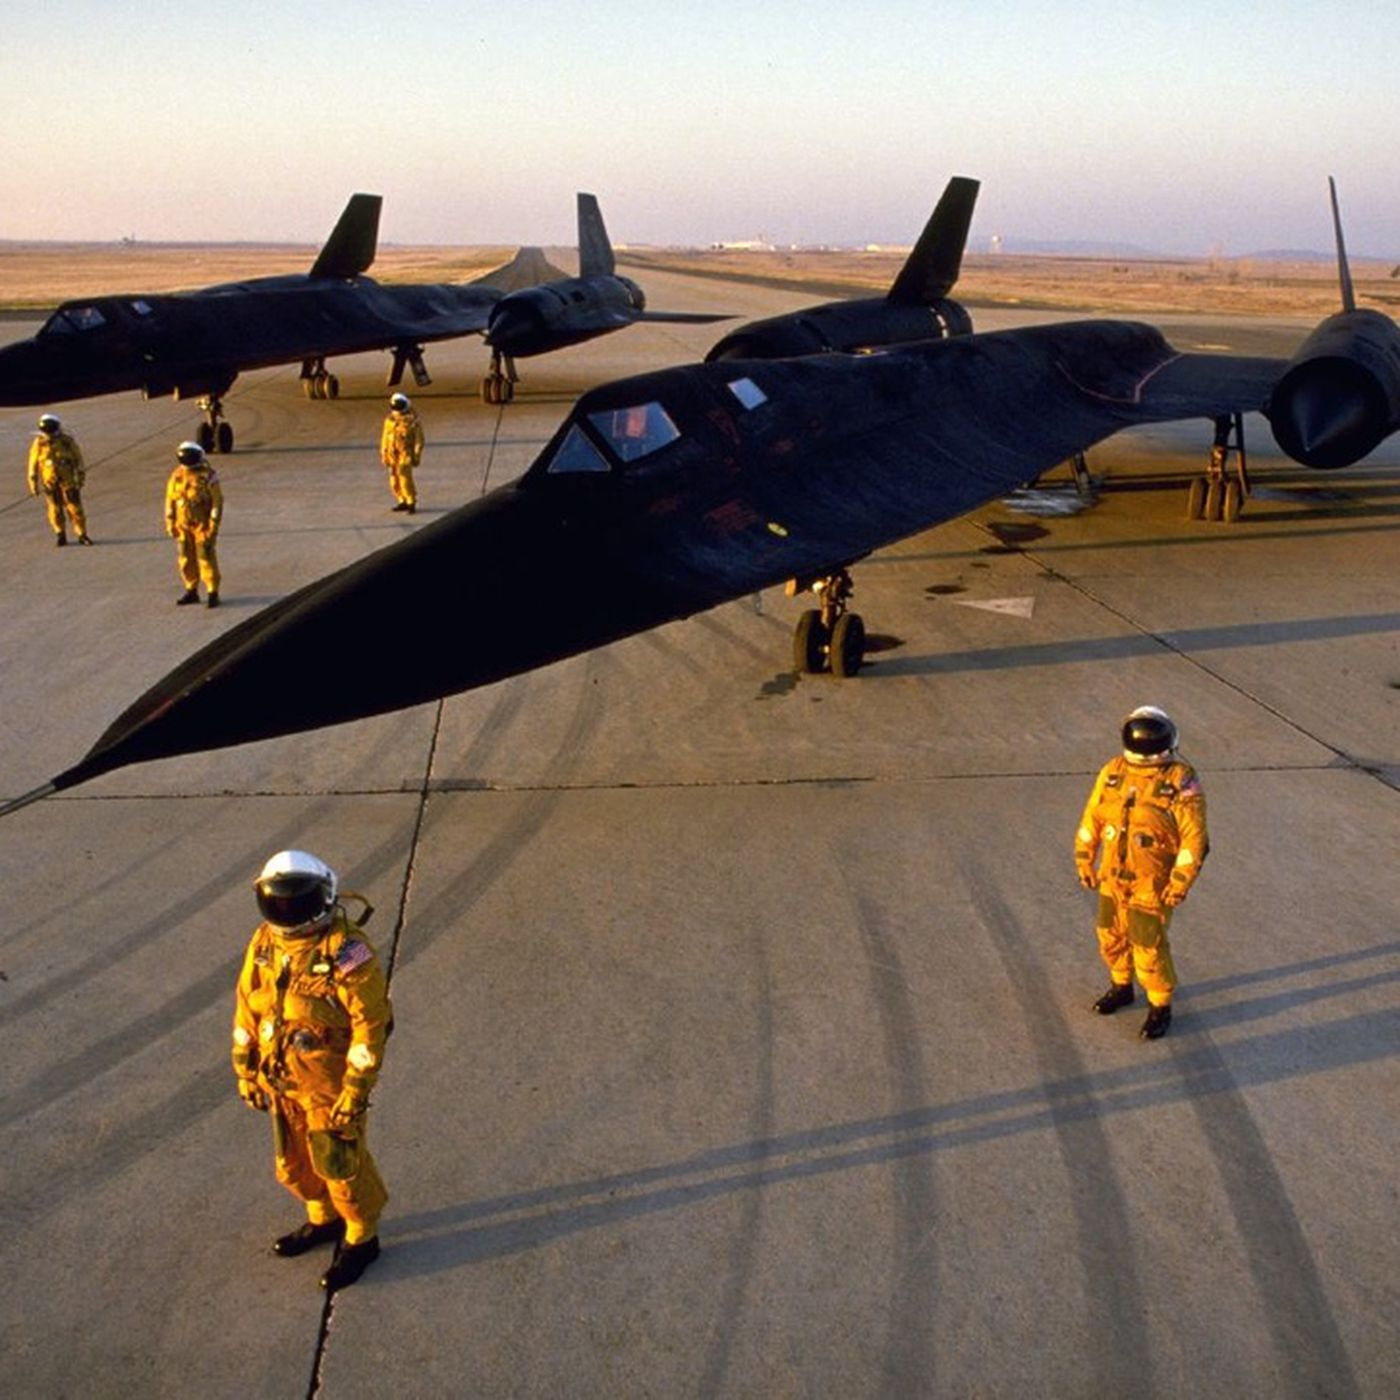 Flying the world's fastest plane: Behind the stick of the SR